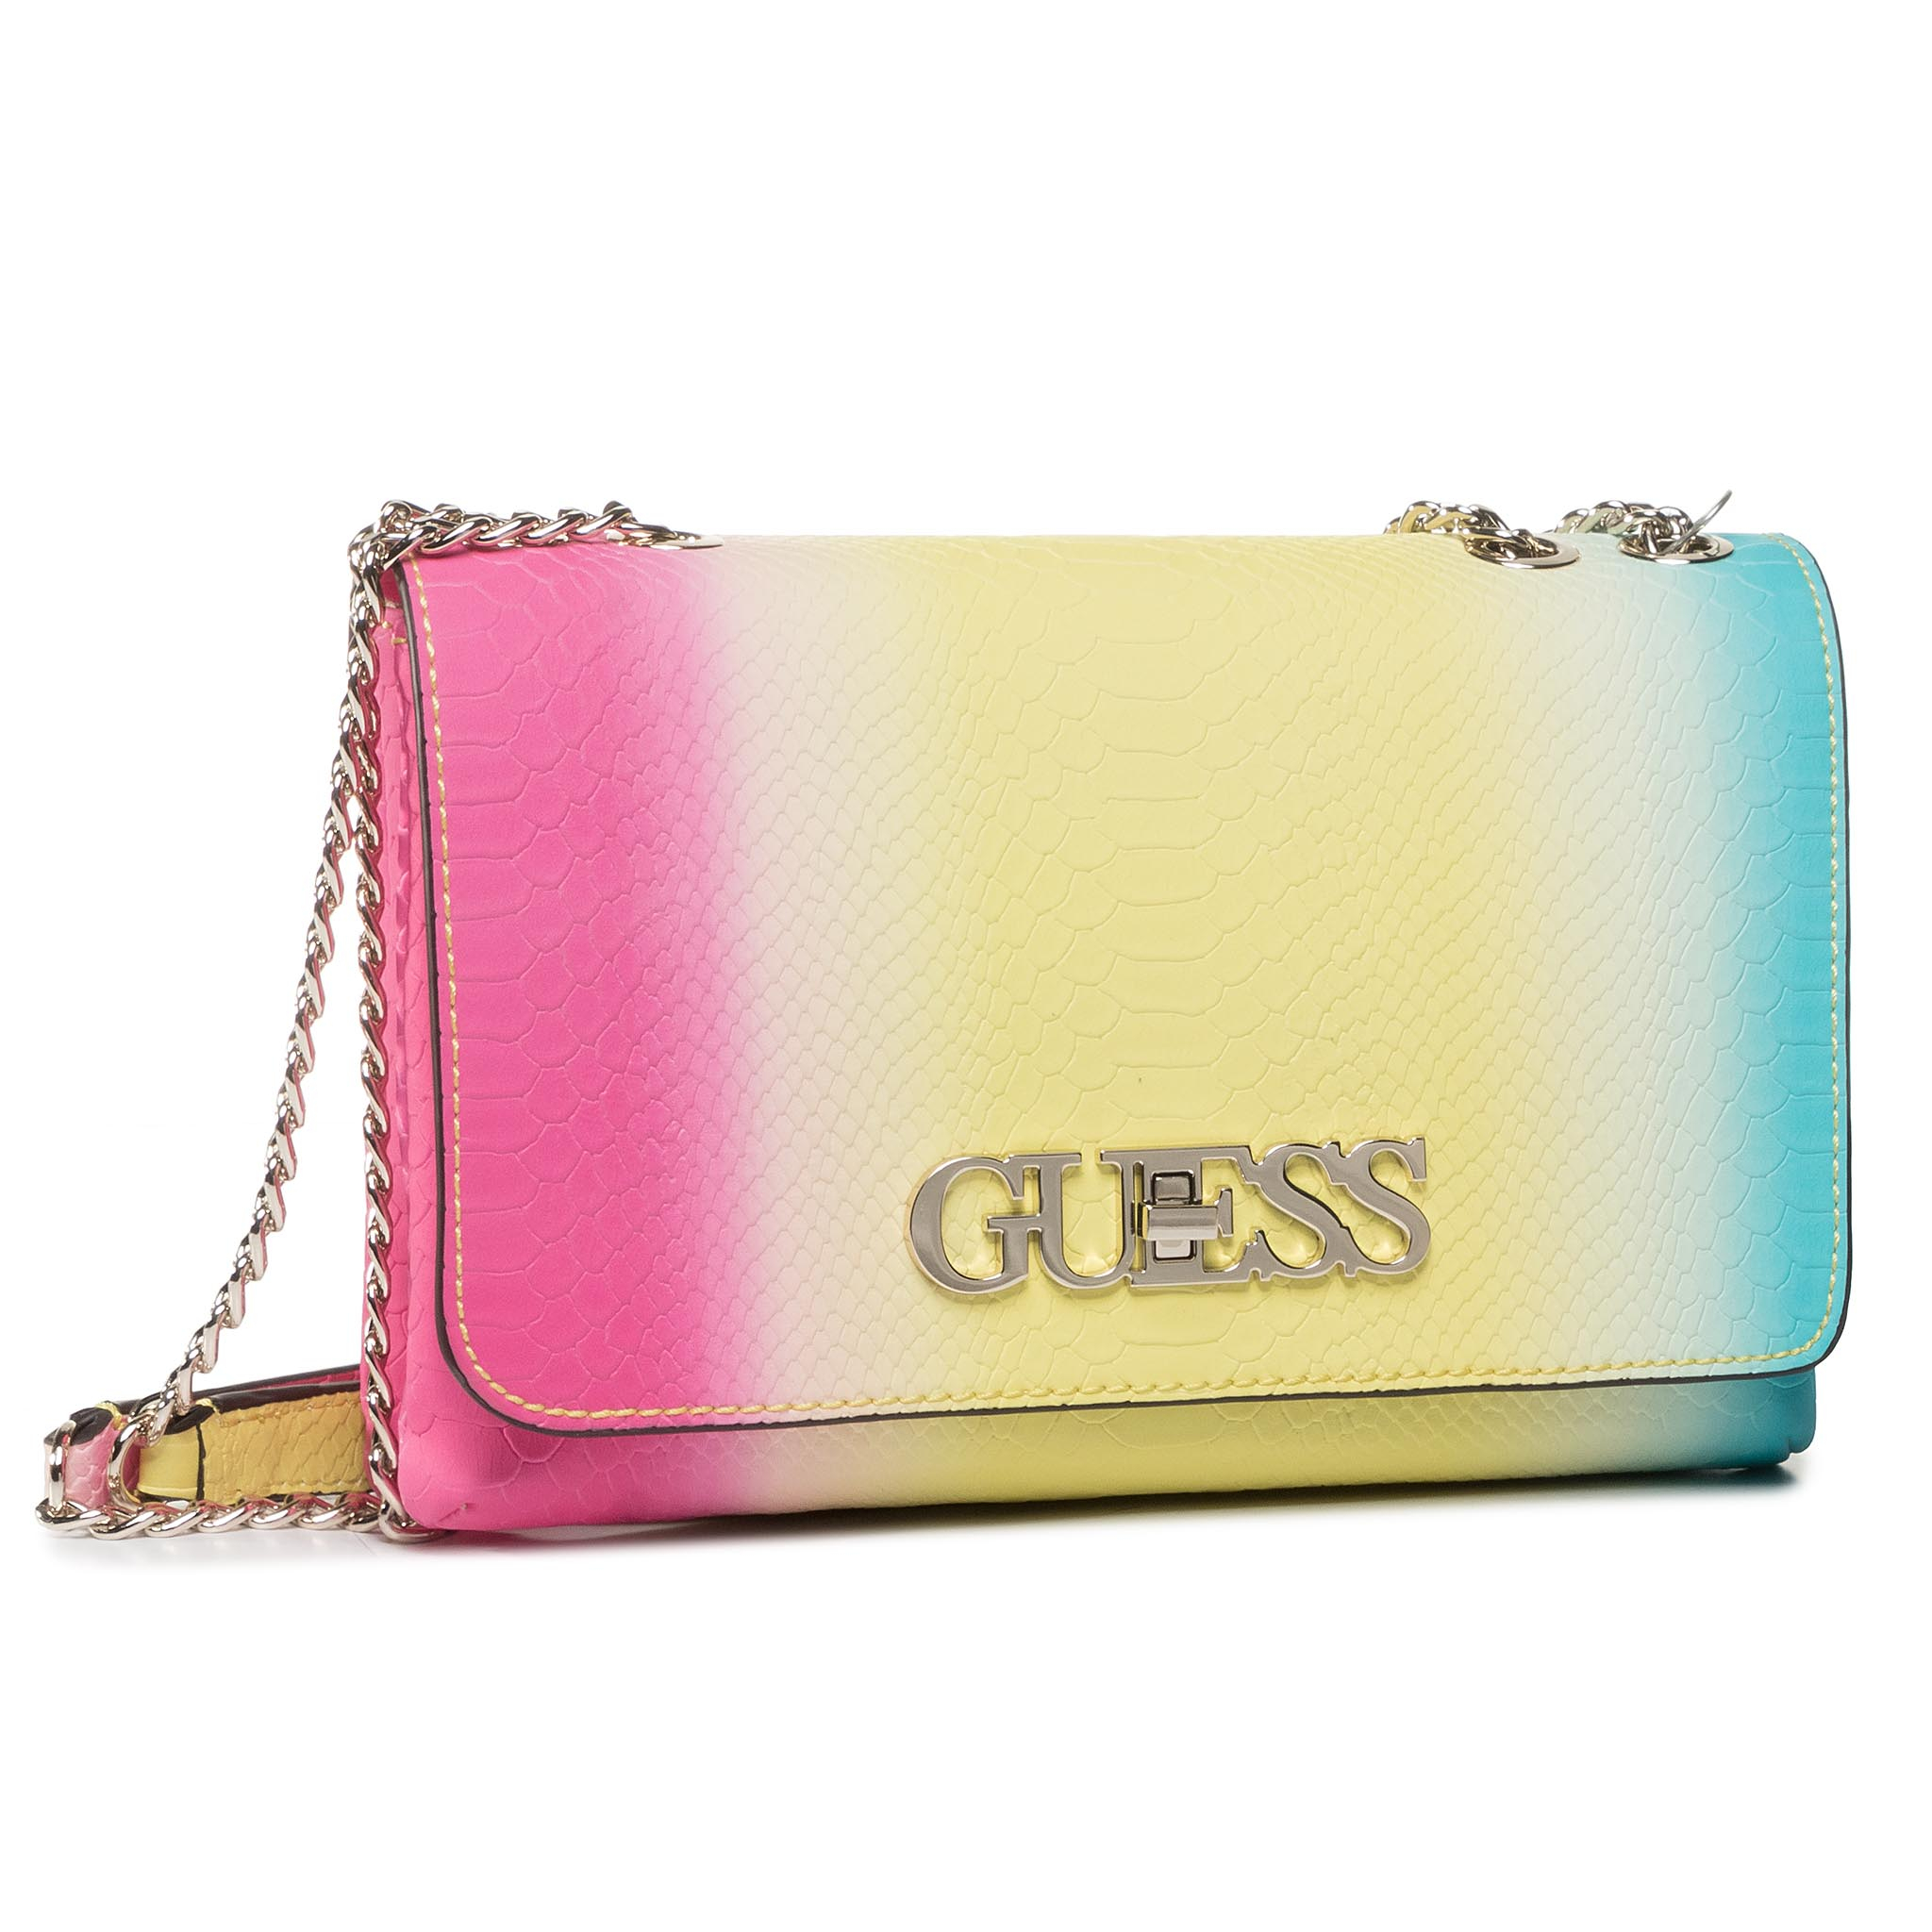 Geantă GUESS - Guess Chic (VG) HWVG75 89210 MULTI SOM